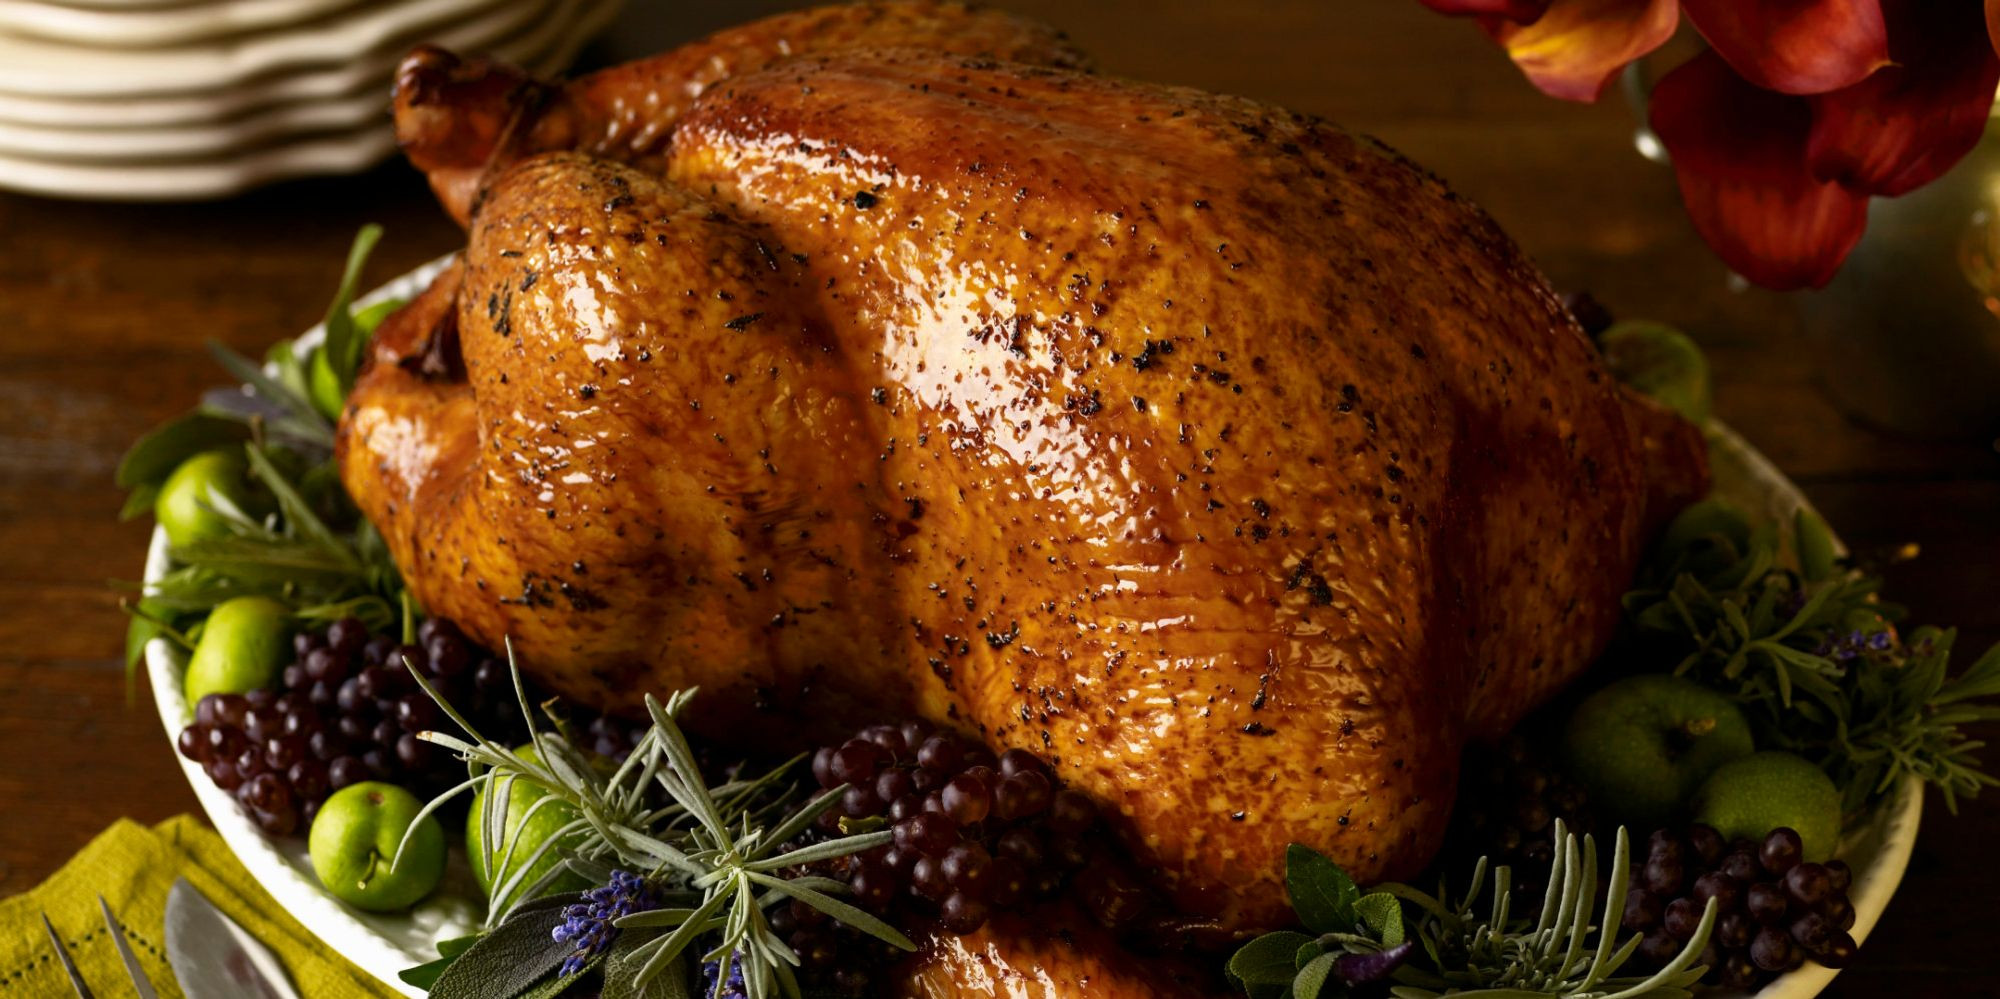 Best Turkey To Buy For Thanksgiving  How Much Turkey To Buy Per Person For Thanksgiving